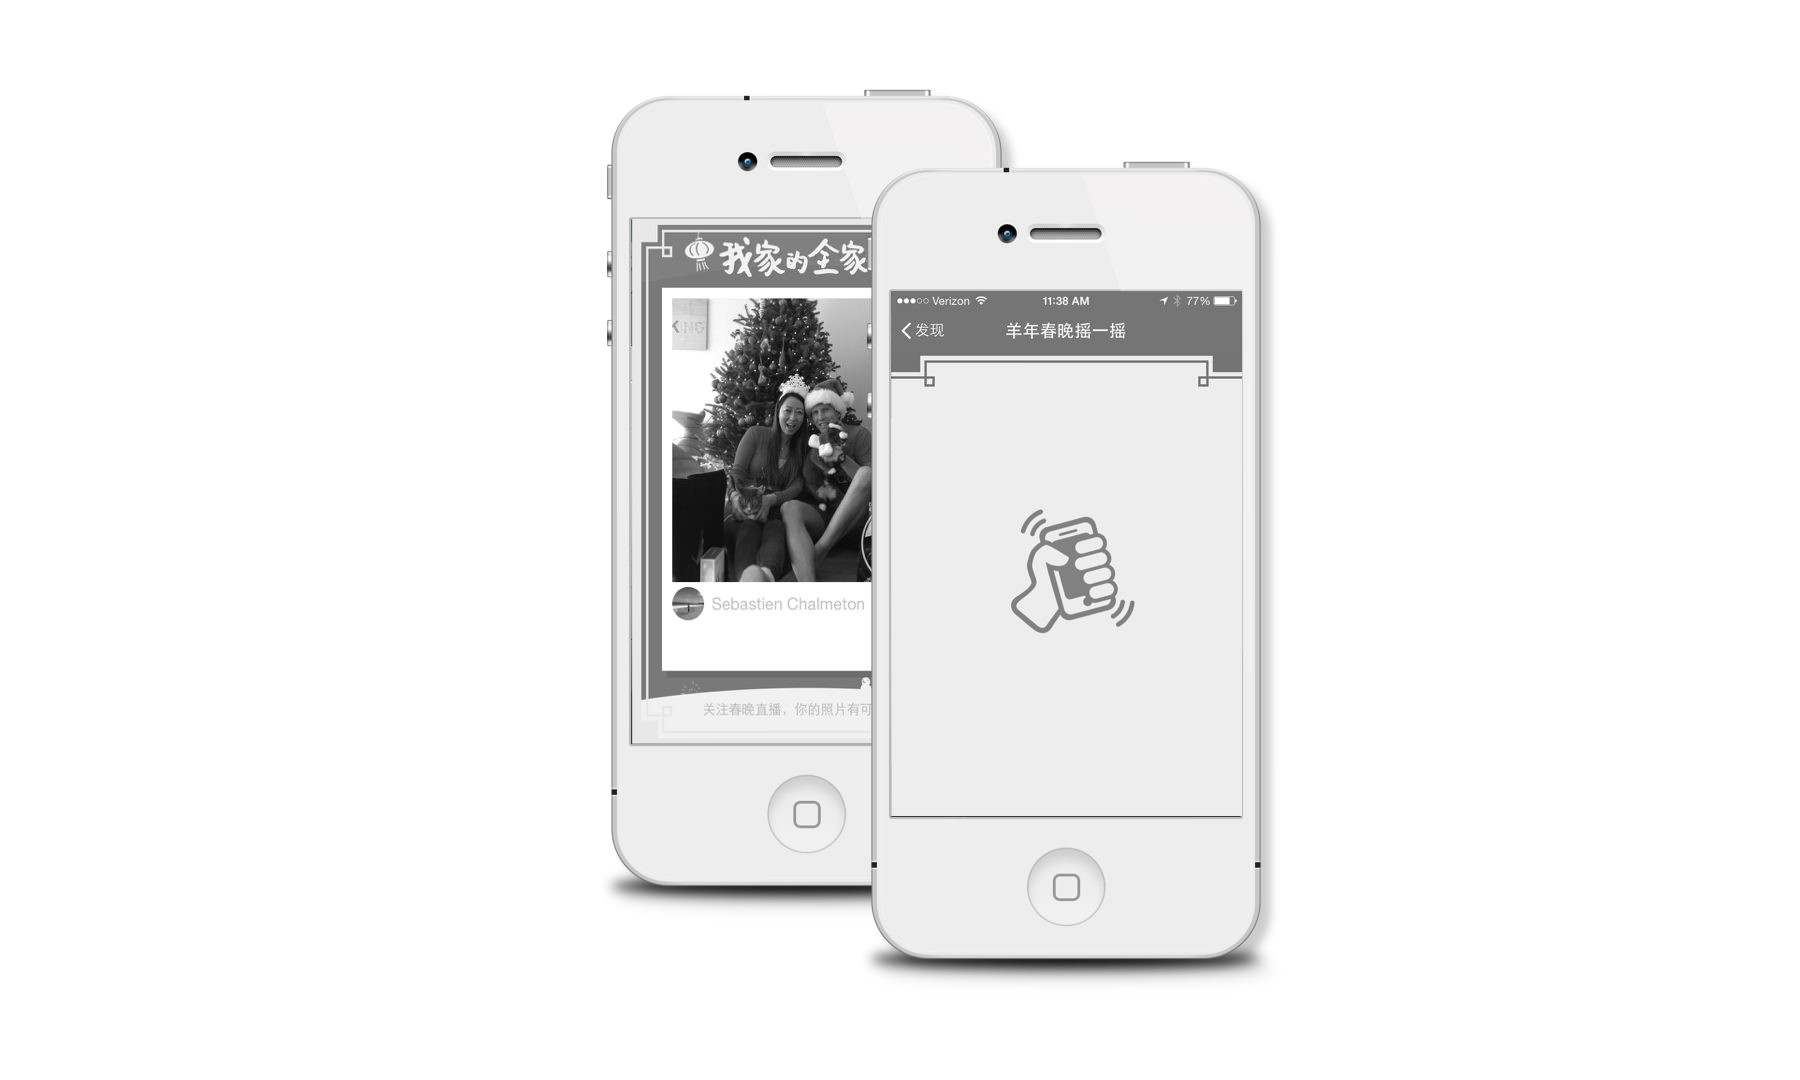 US$80 Million Cash Gifts On WeChat